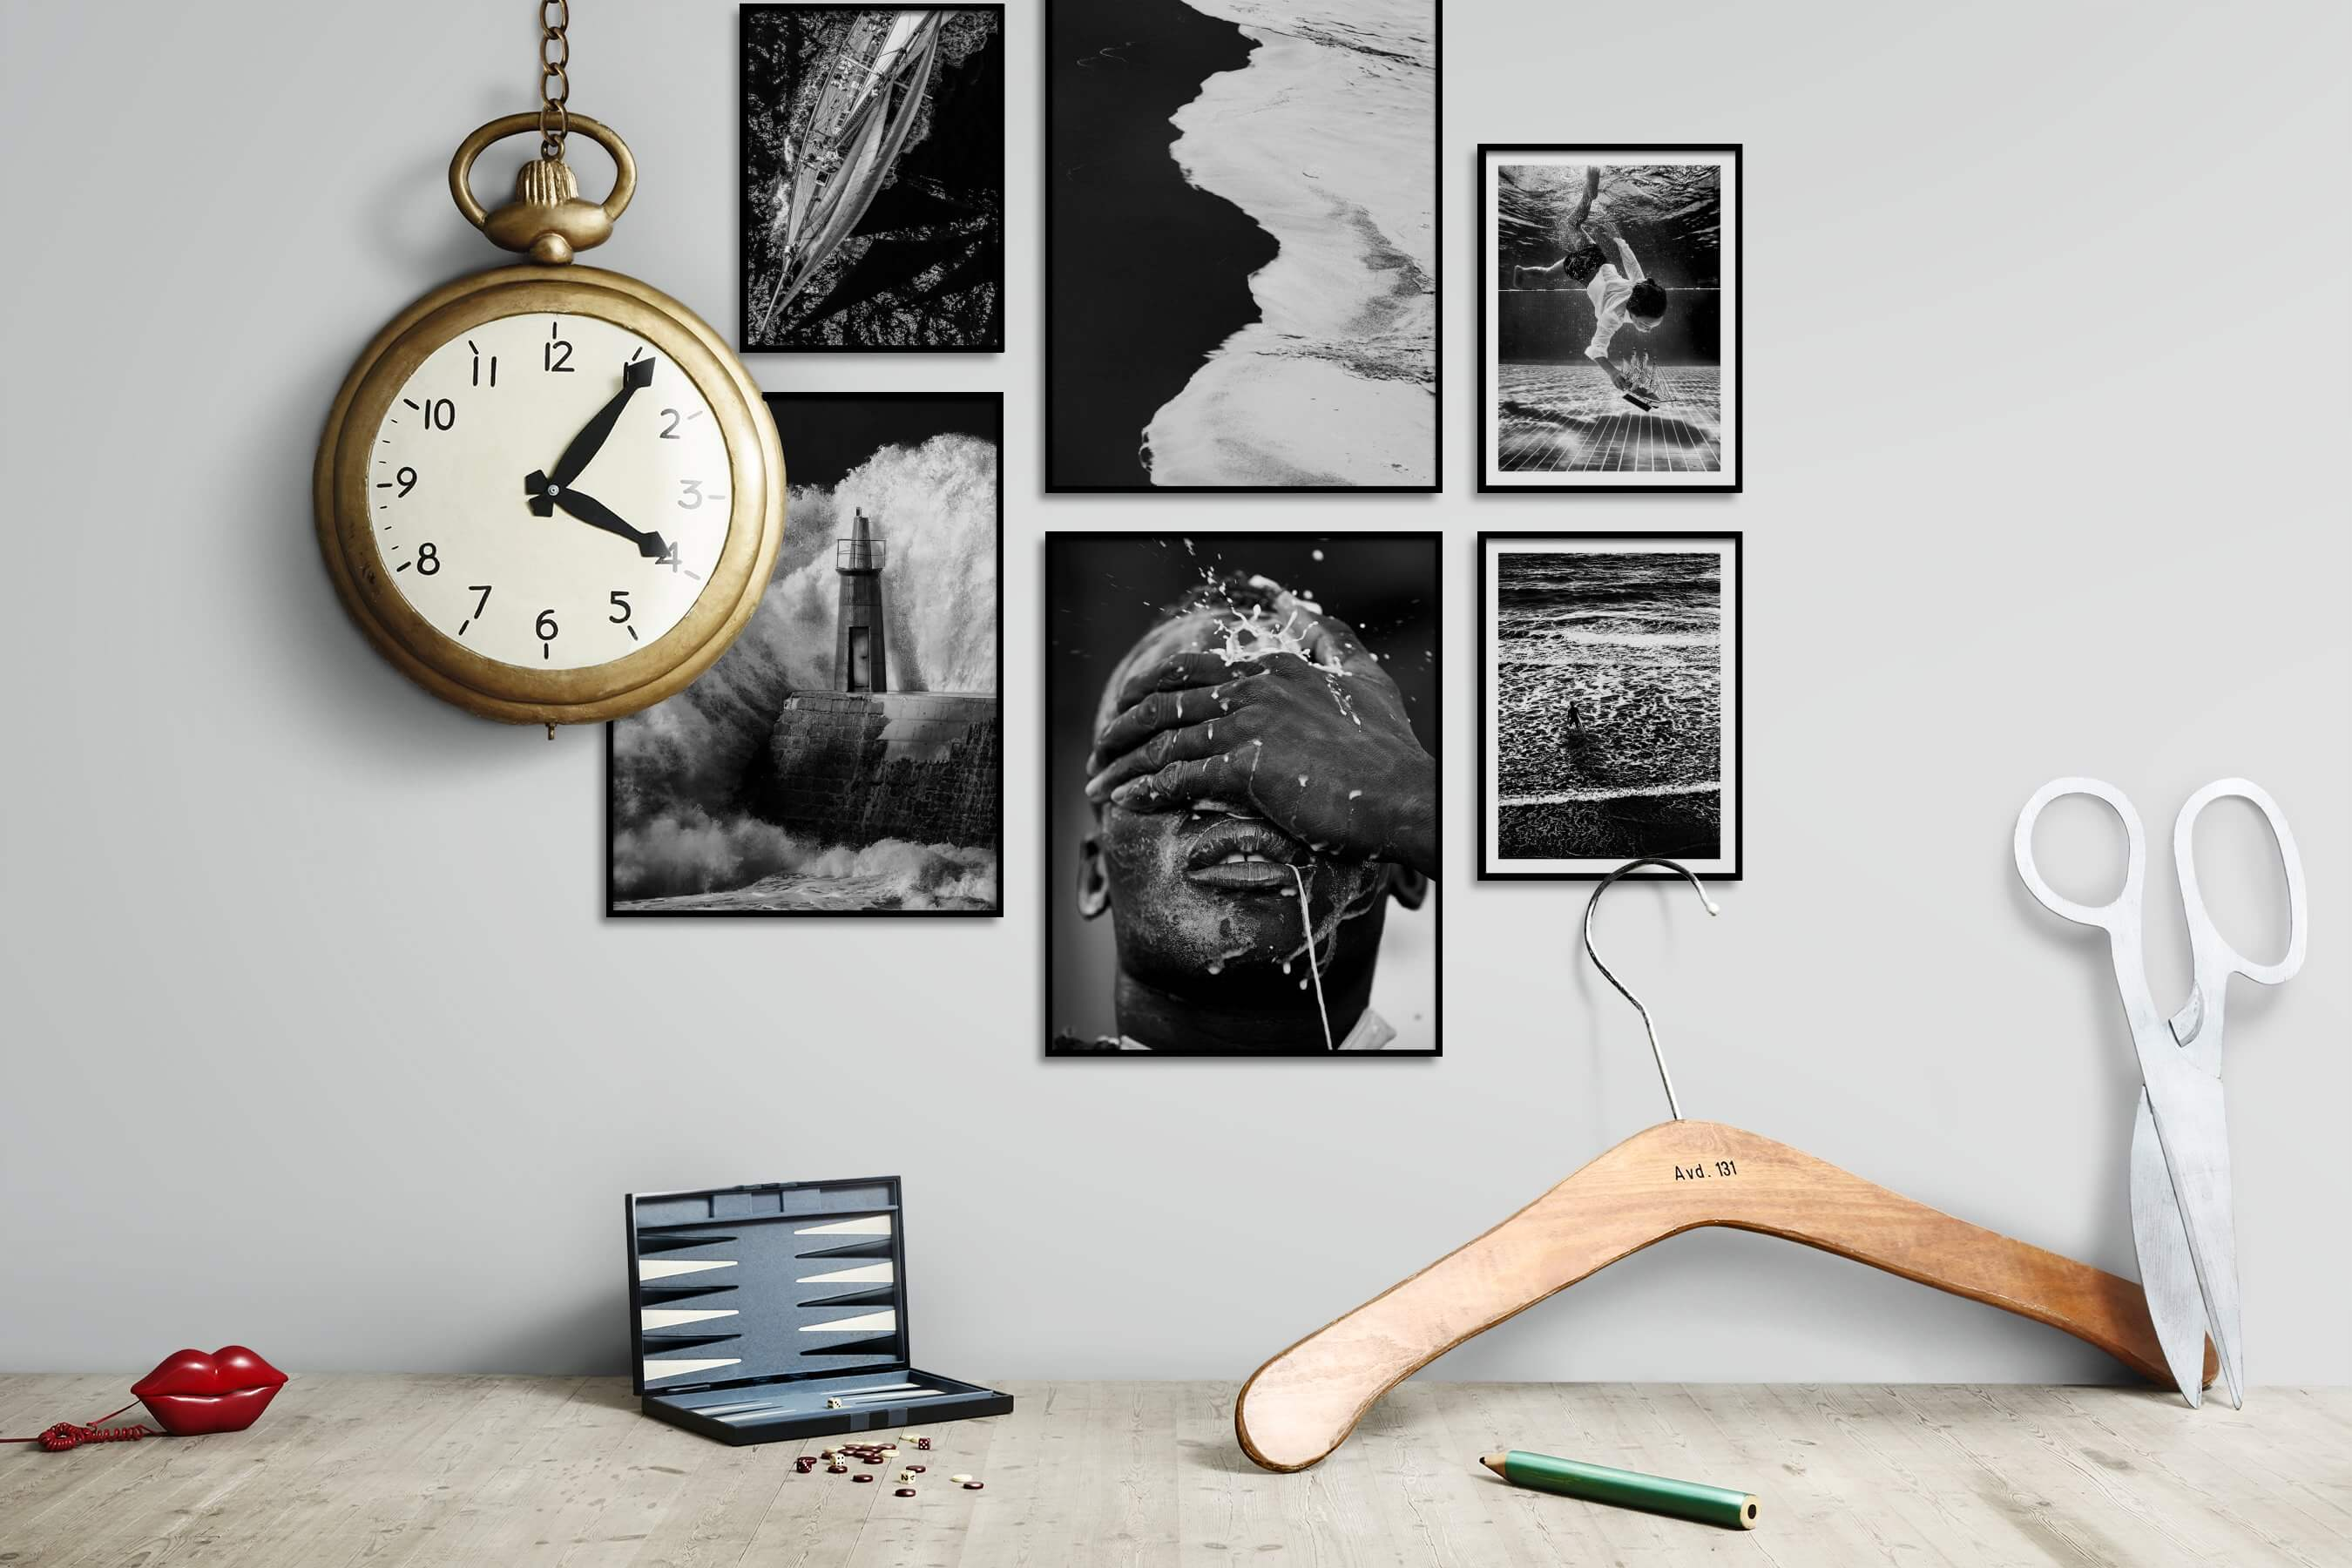 Gallery wall idea with six framed pictures arranged on a wall depicting Black & White, Dark Tones, Beach & Water, For the Minimalist, and Fashion & Beauty